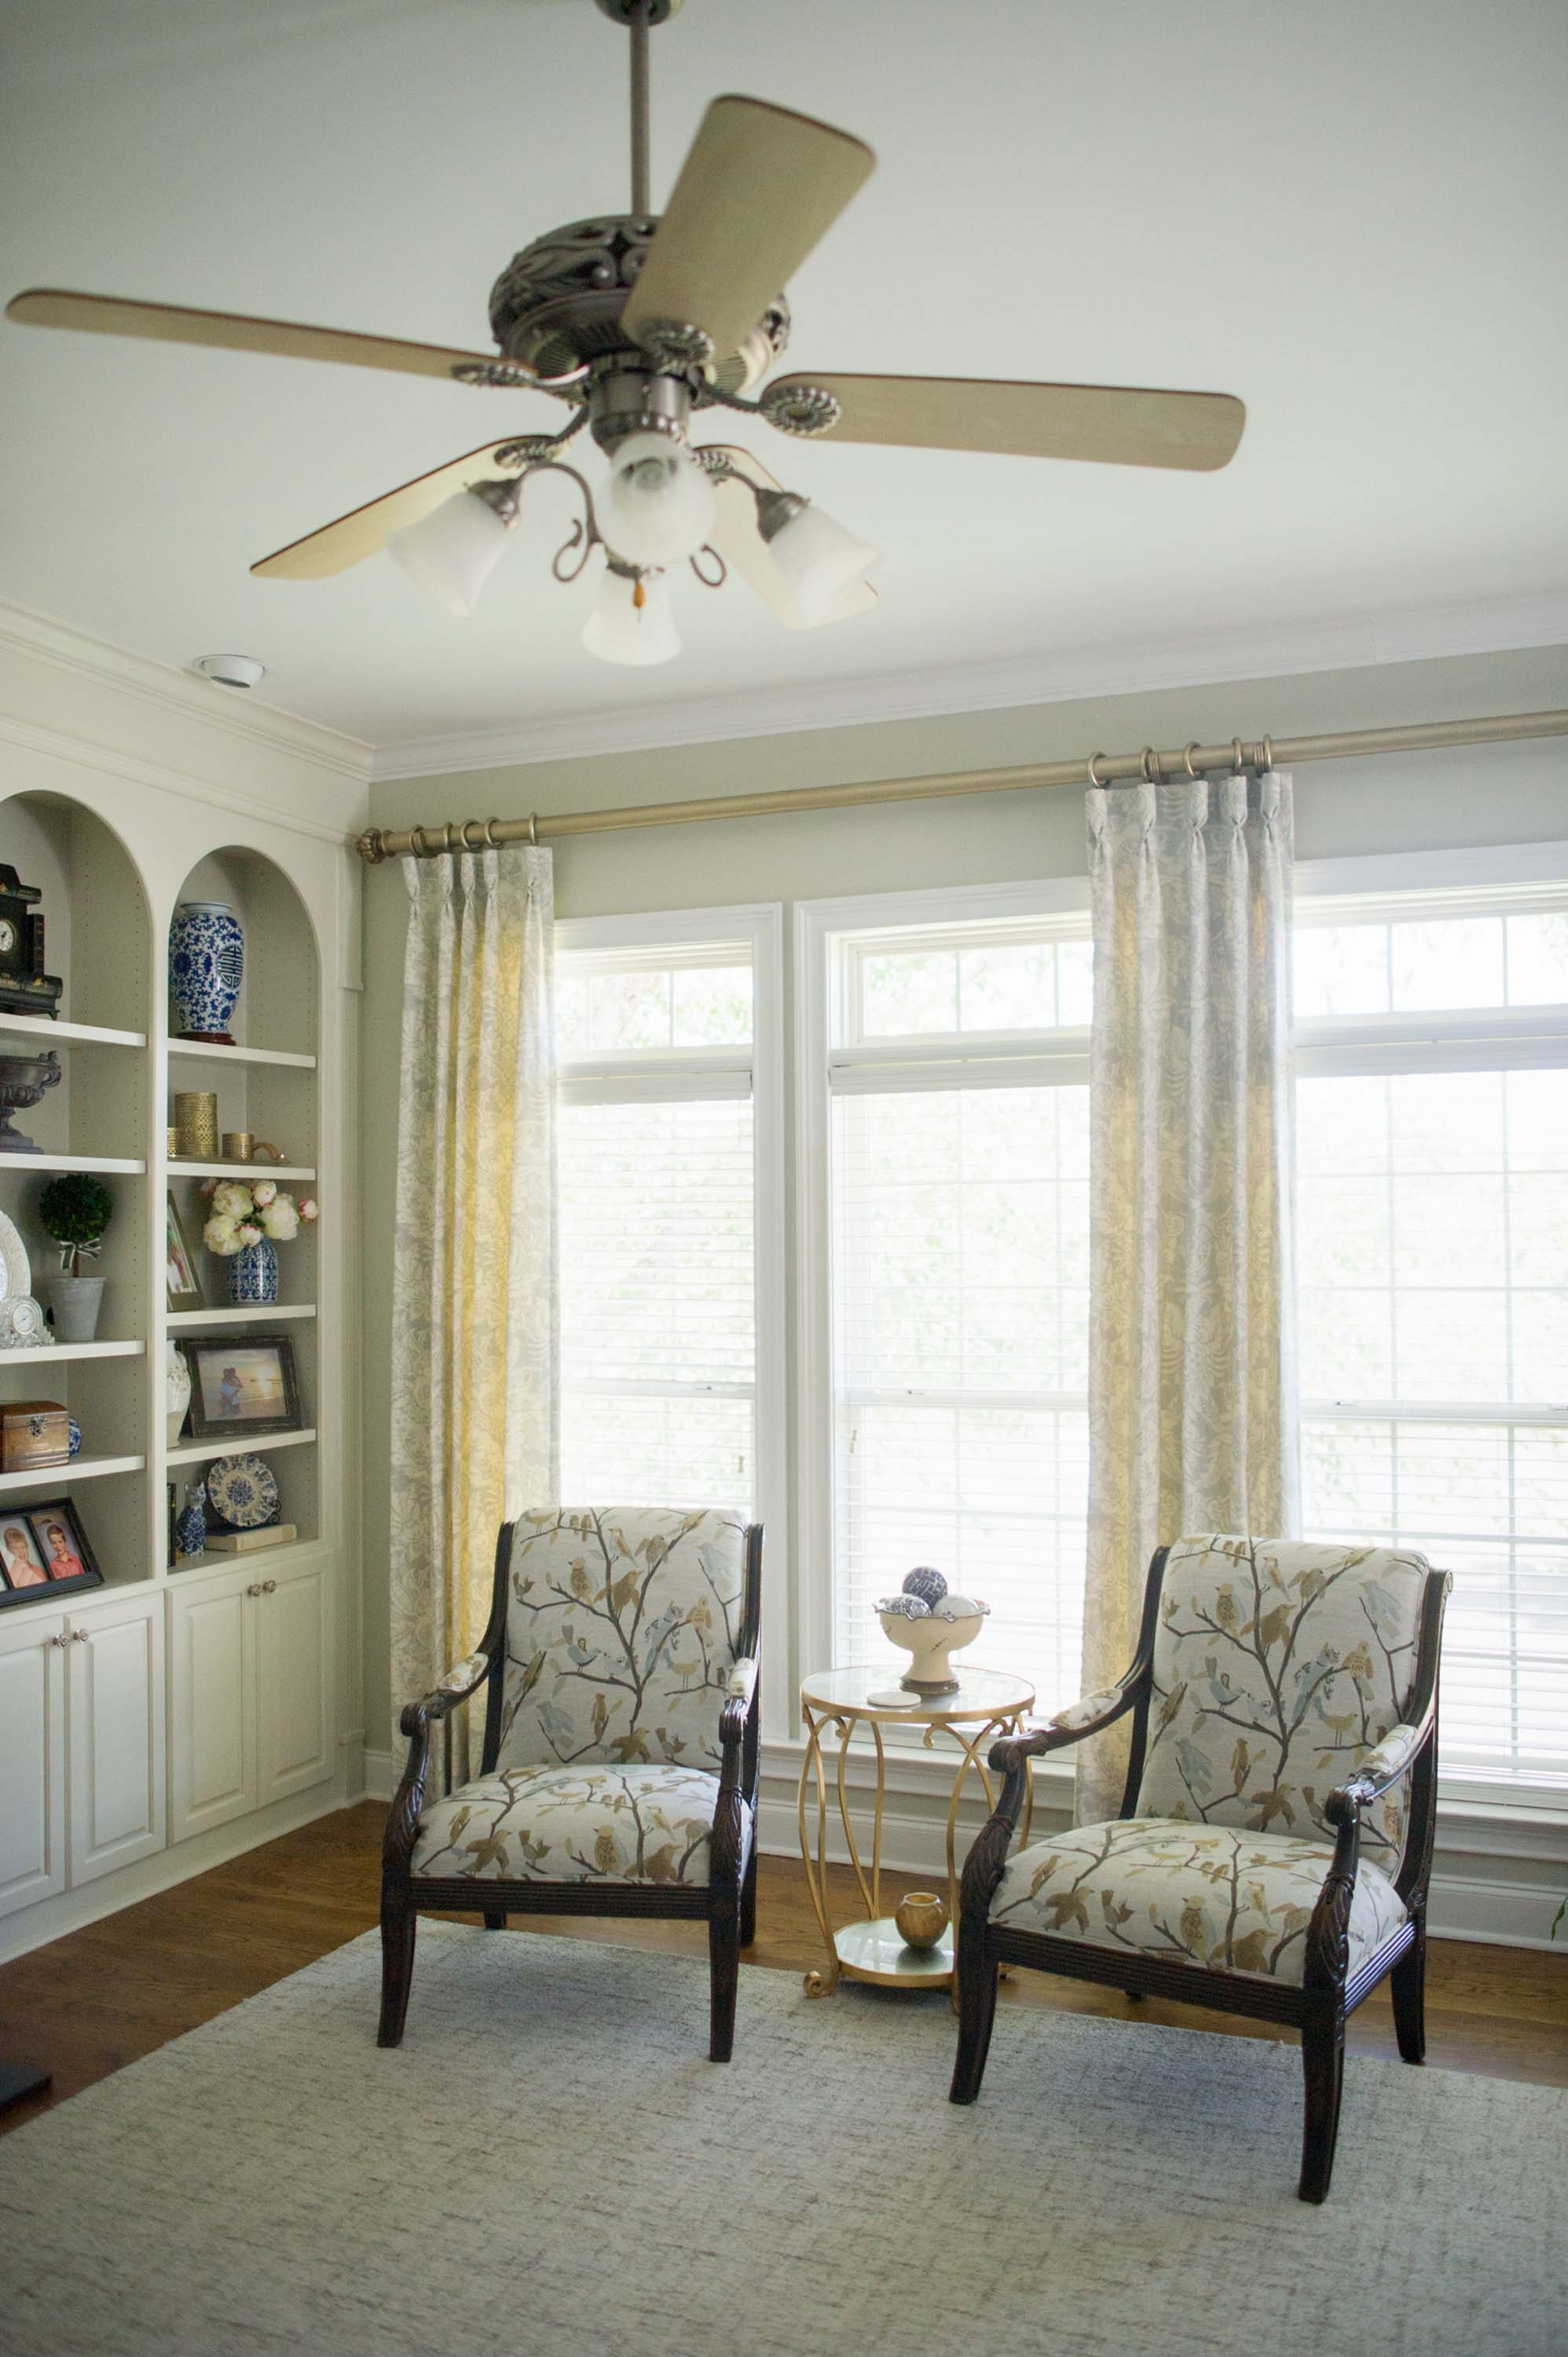 House interior with arm chairs, white window, and ceiling fan